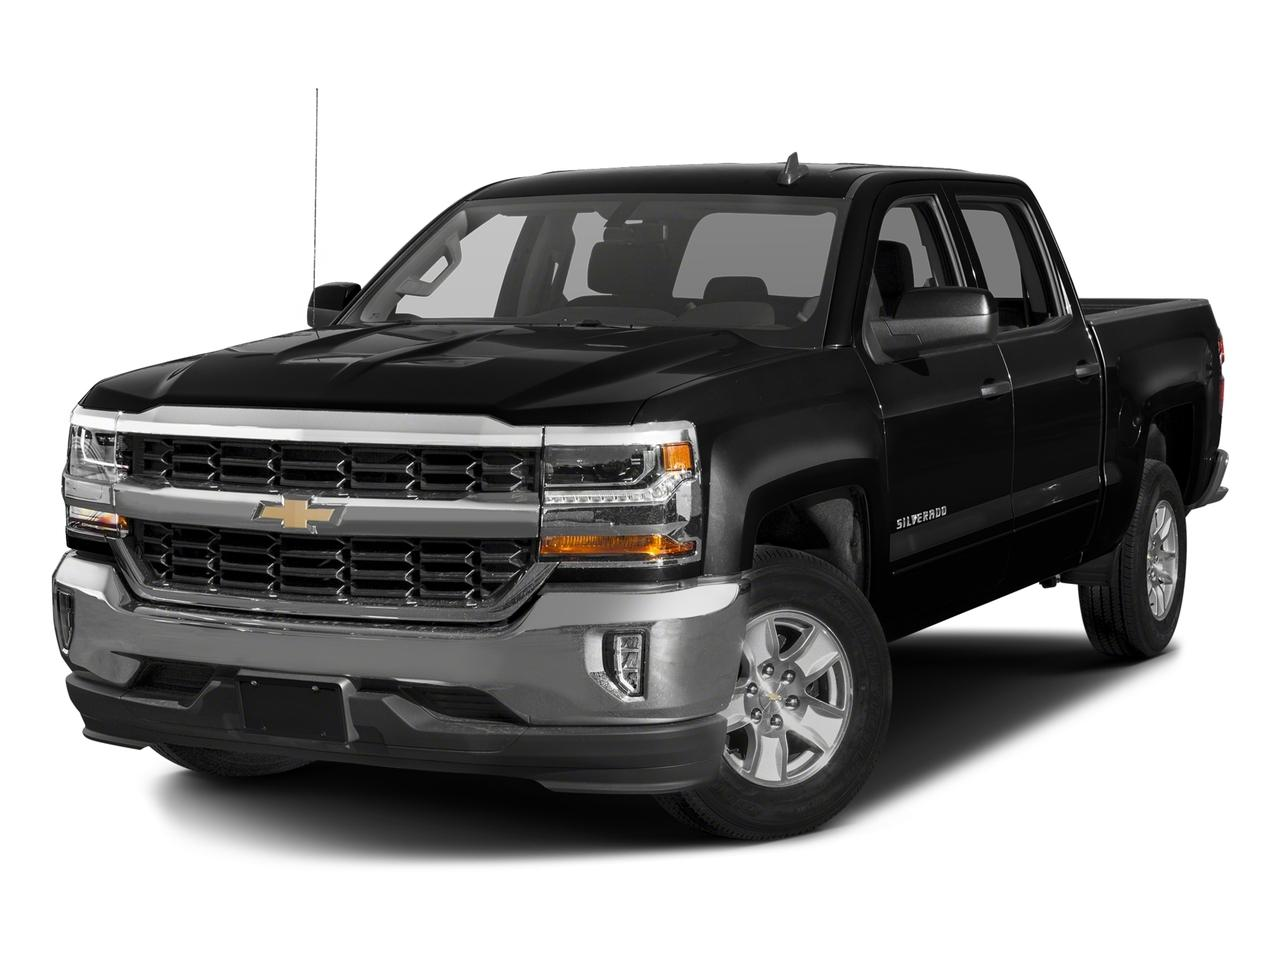 2018 Chevrolet Silverado 1500 Vehicle Photo in Independence, MO 64055